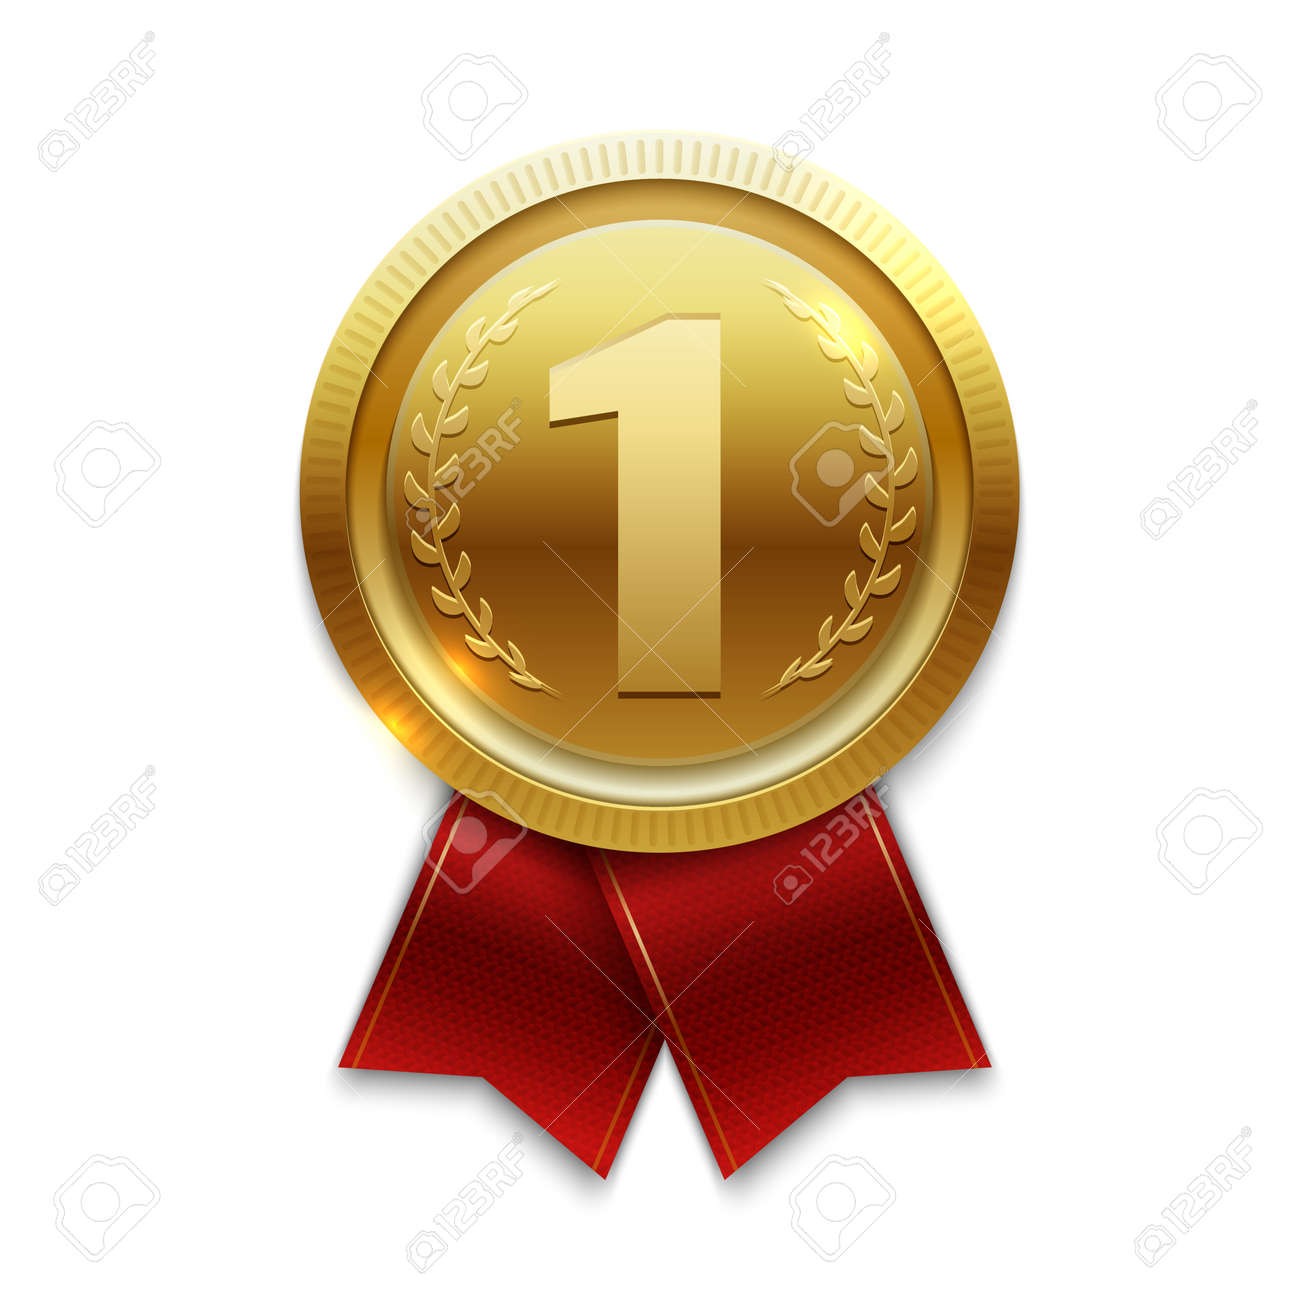 Winner gold medal with red ribbons. Vector illustration - 167390539